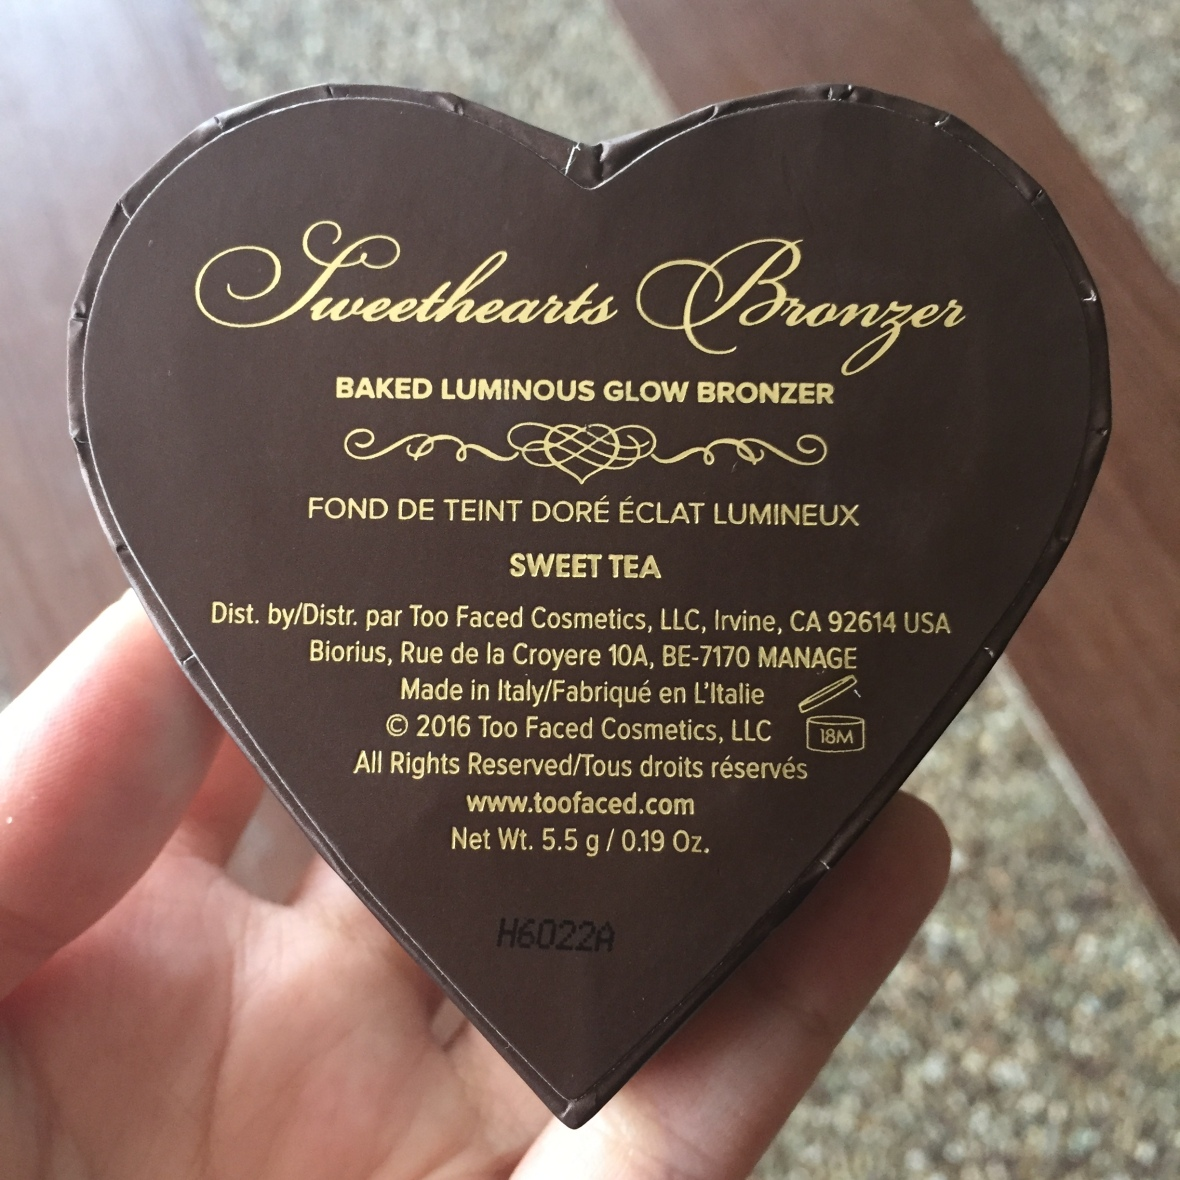 Sweethearts Bronzer by Too Faced #13